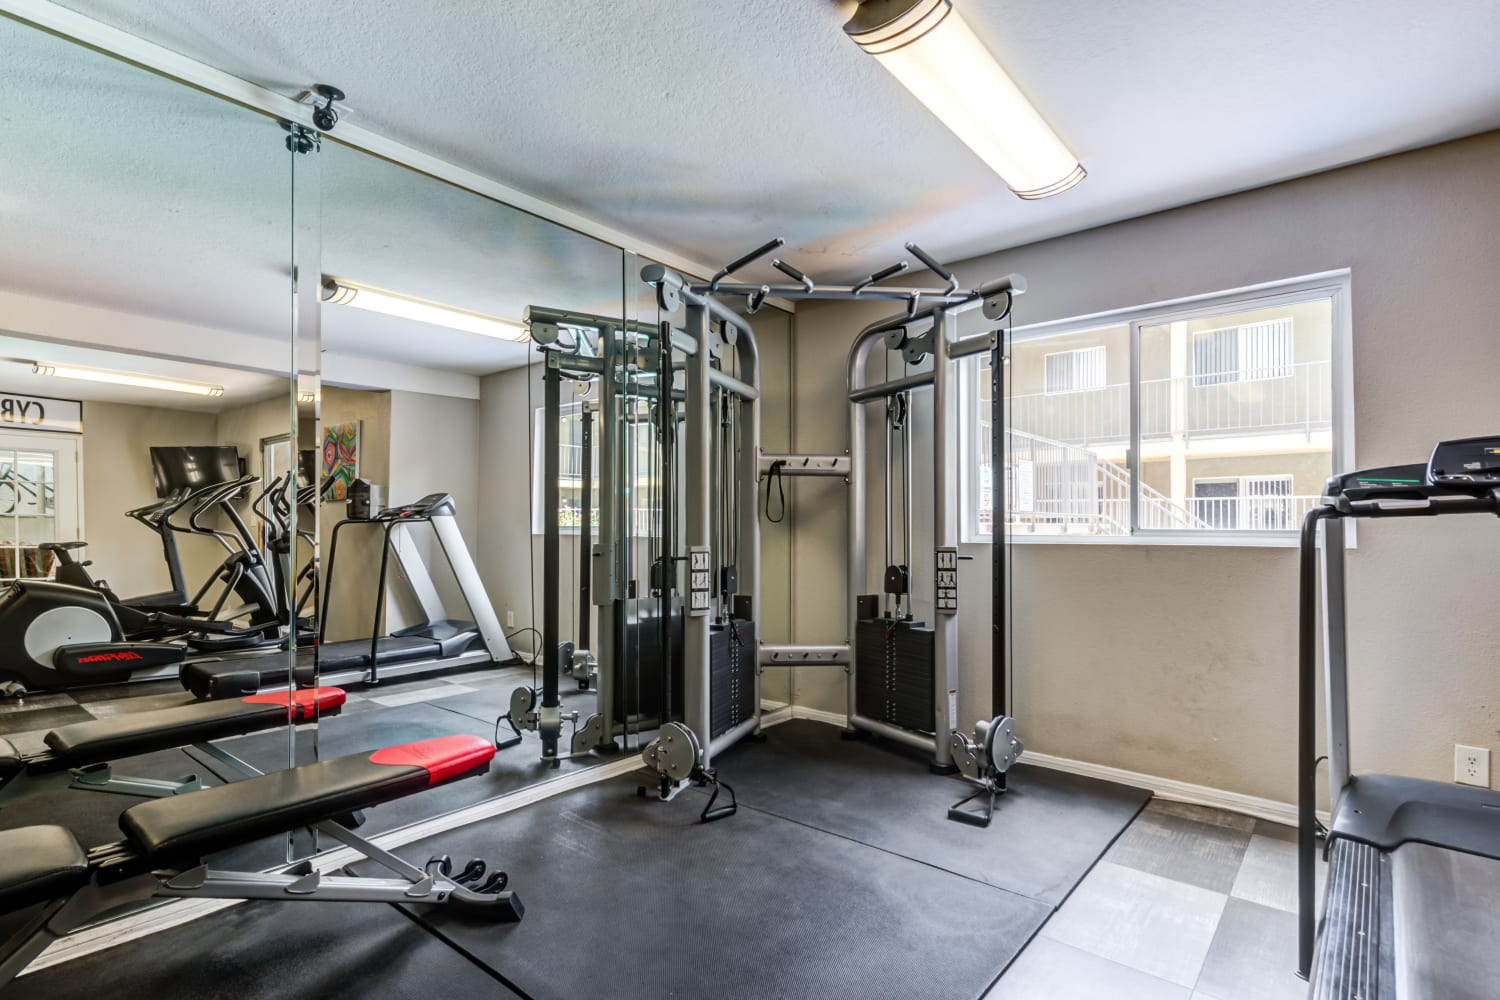 Fitness Center at Apartments in Glendale, California